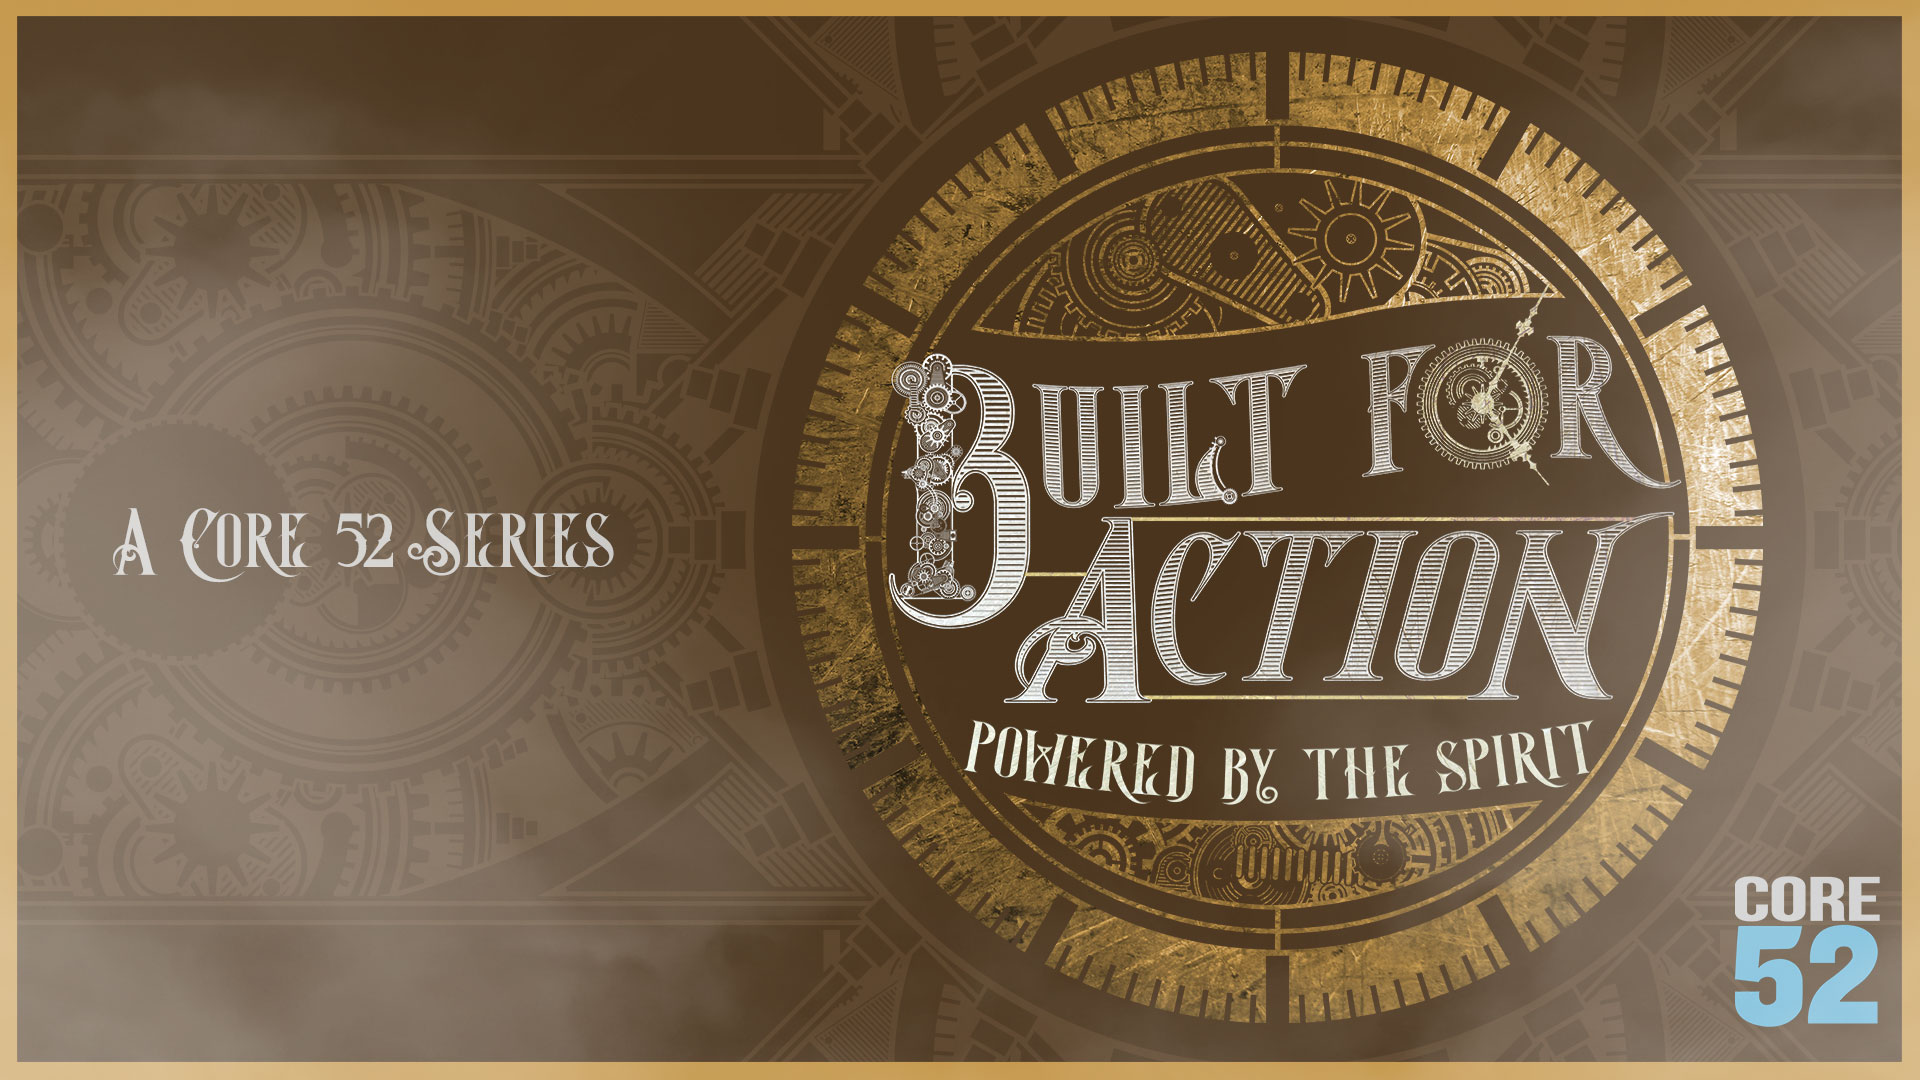 Built for Action Series